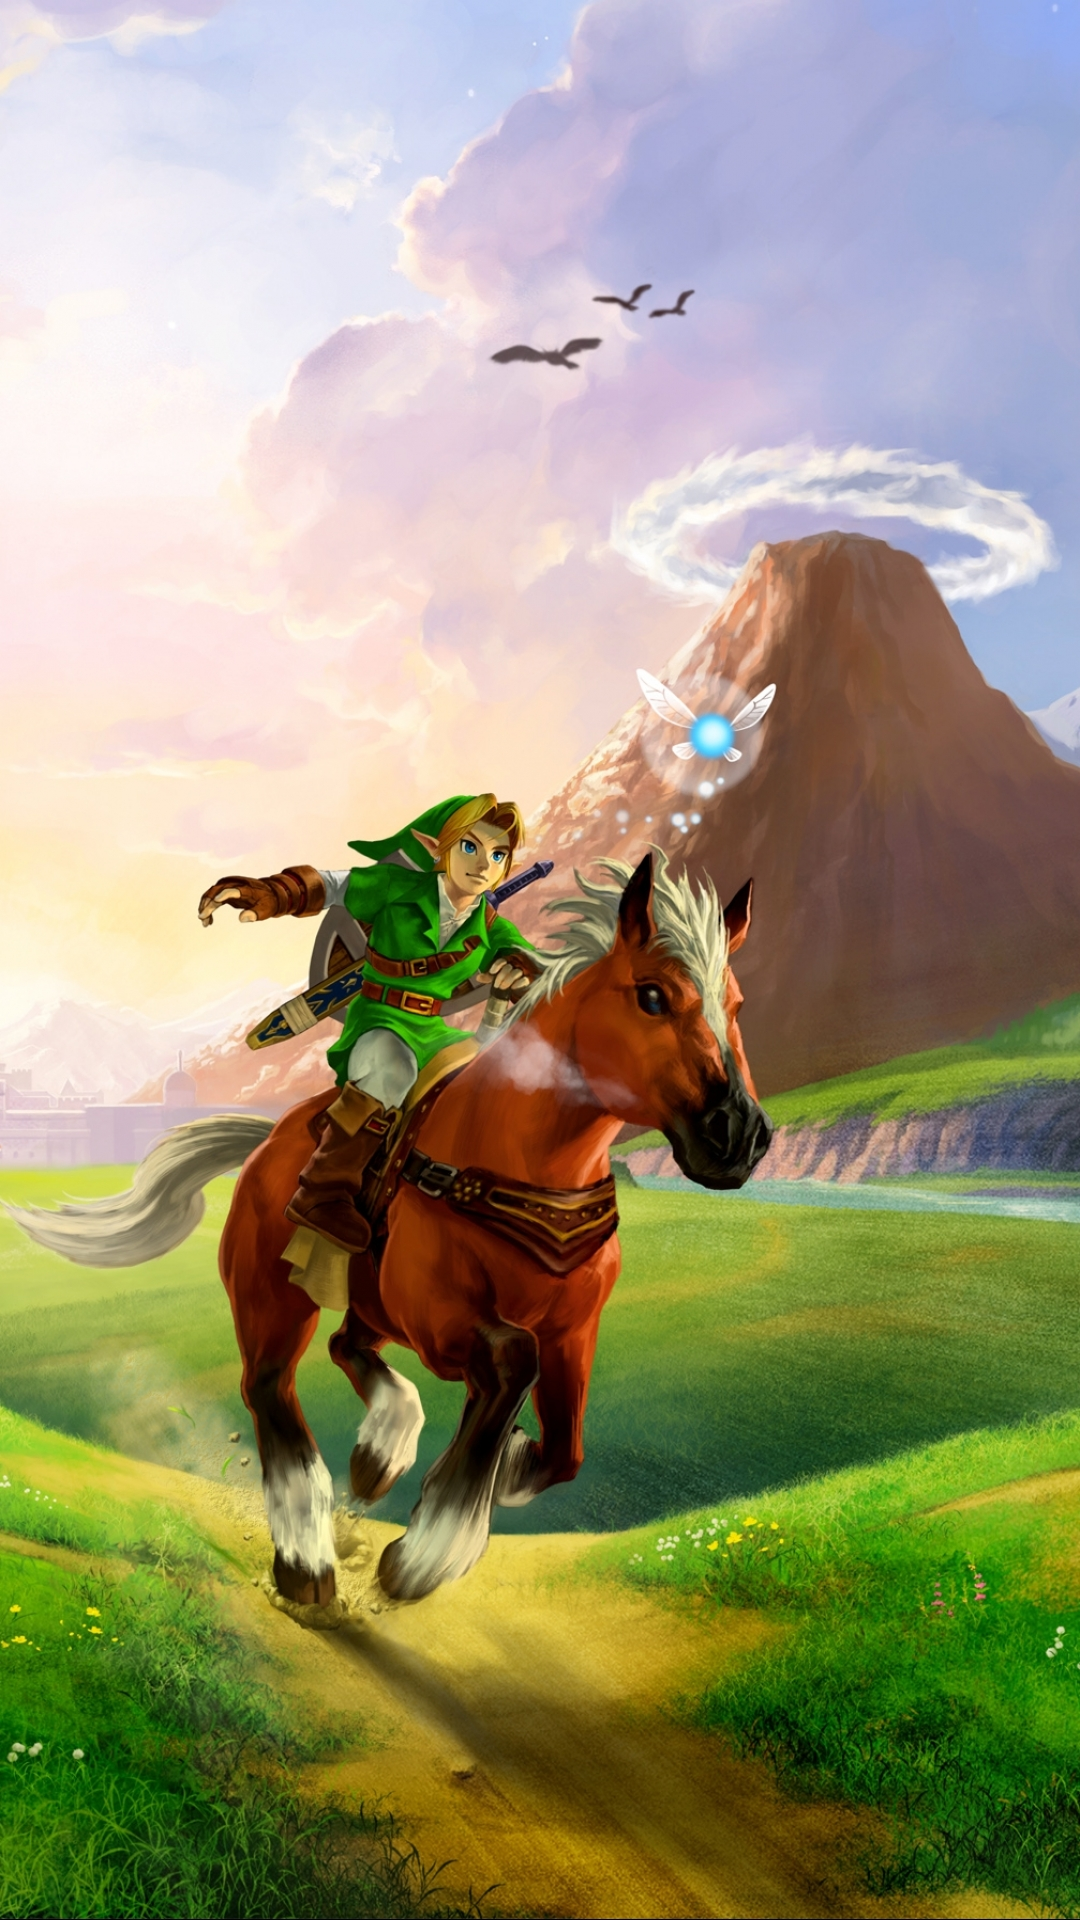 video game/the legend of zelda: ocarina of time (1080x1920